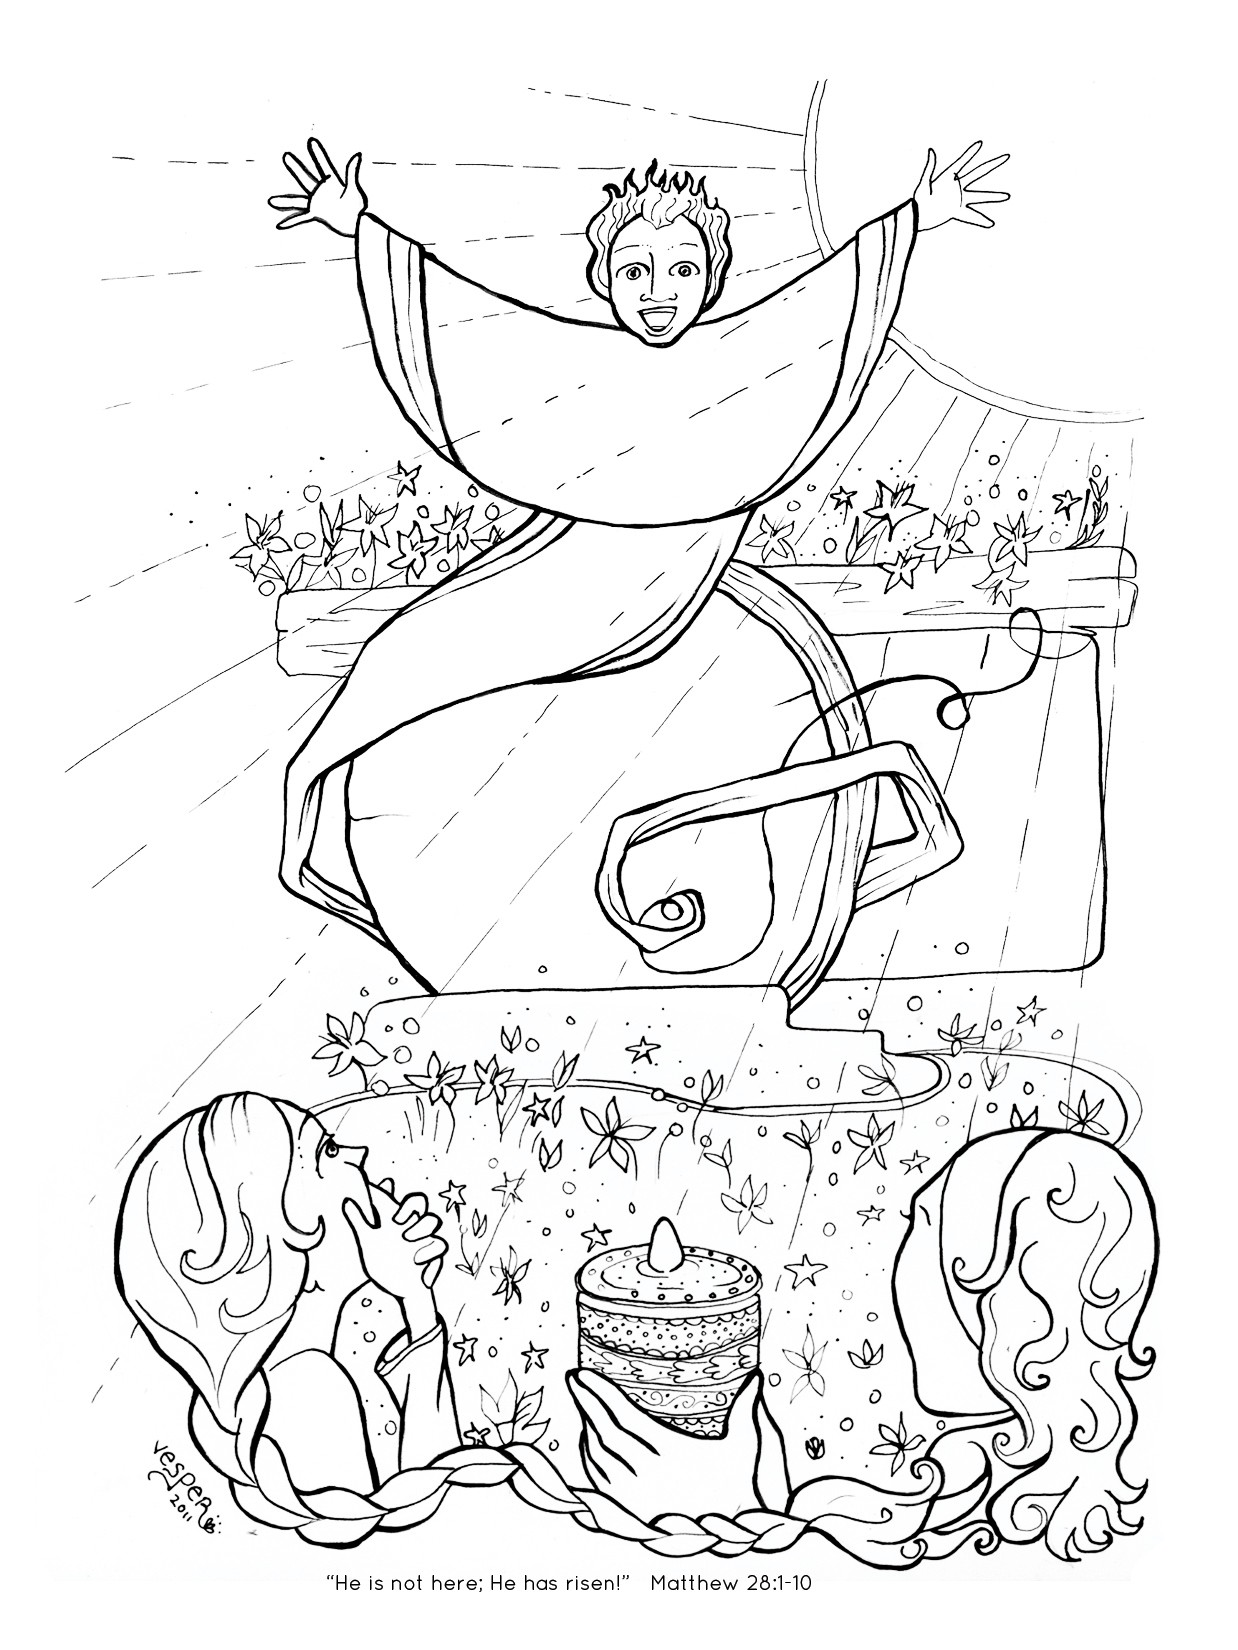 Jesus Empty Tomb Coloring Pages At Getcolorings